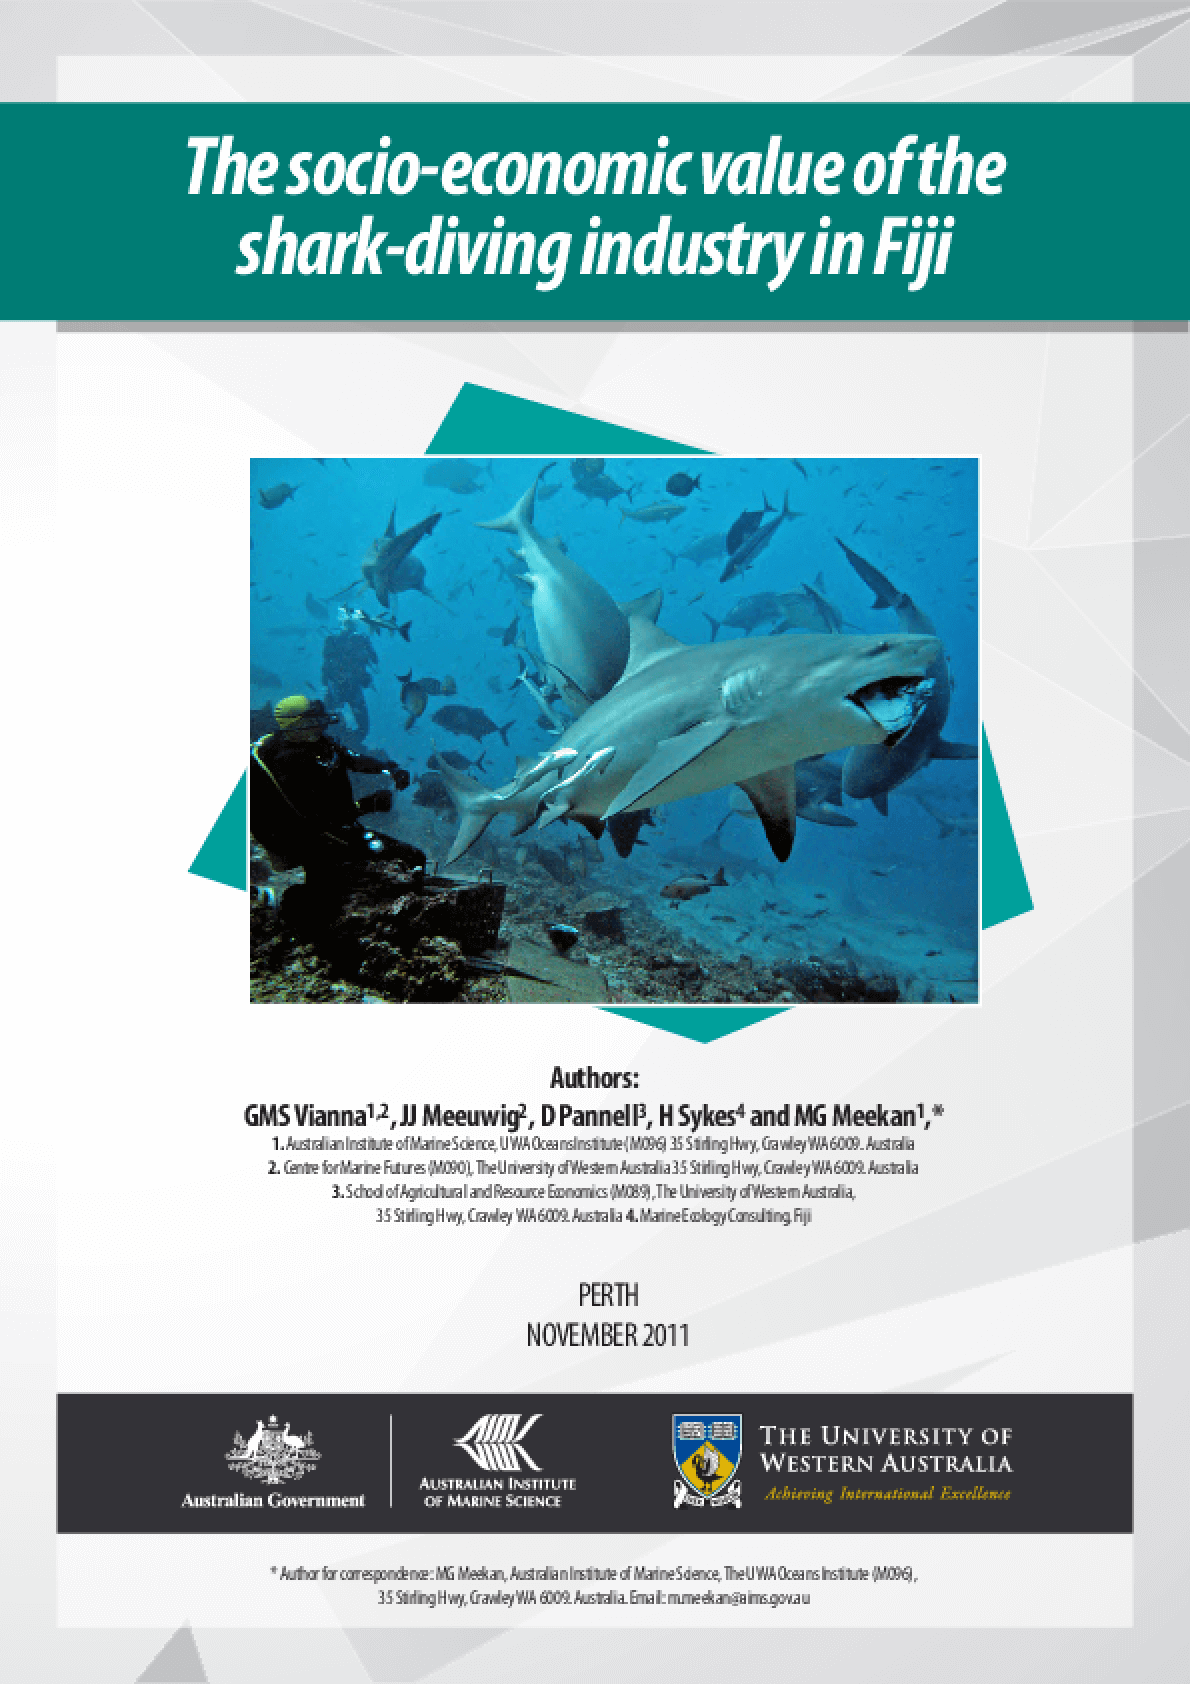 The Socio-Economic Value of the Shark-Diving Industry in Fiji